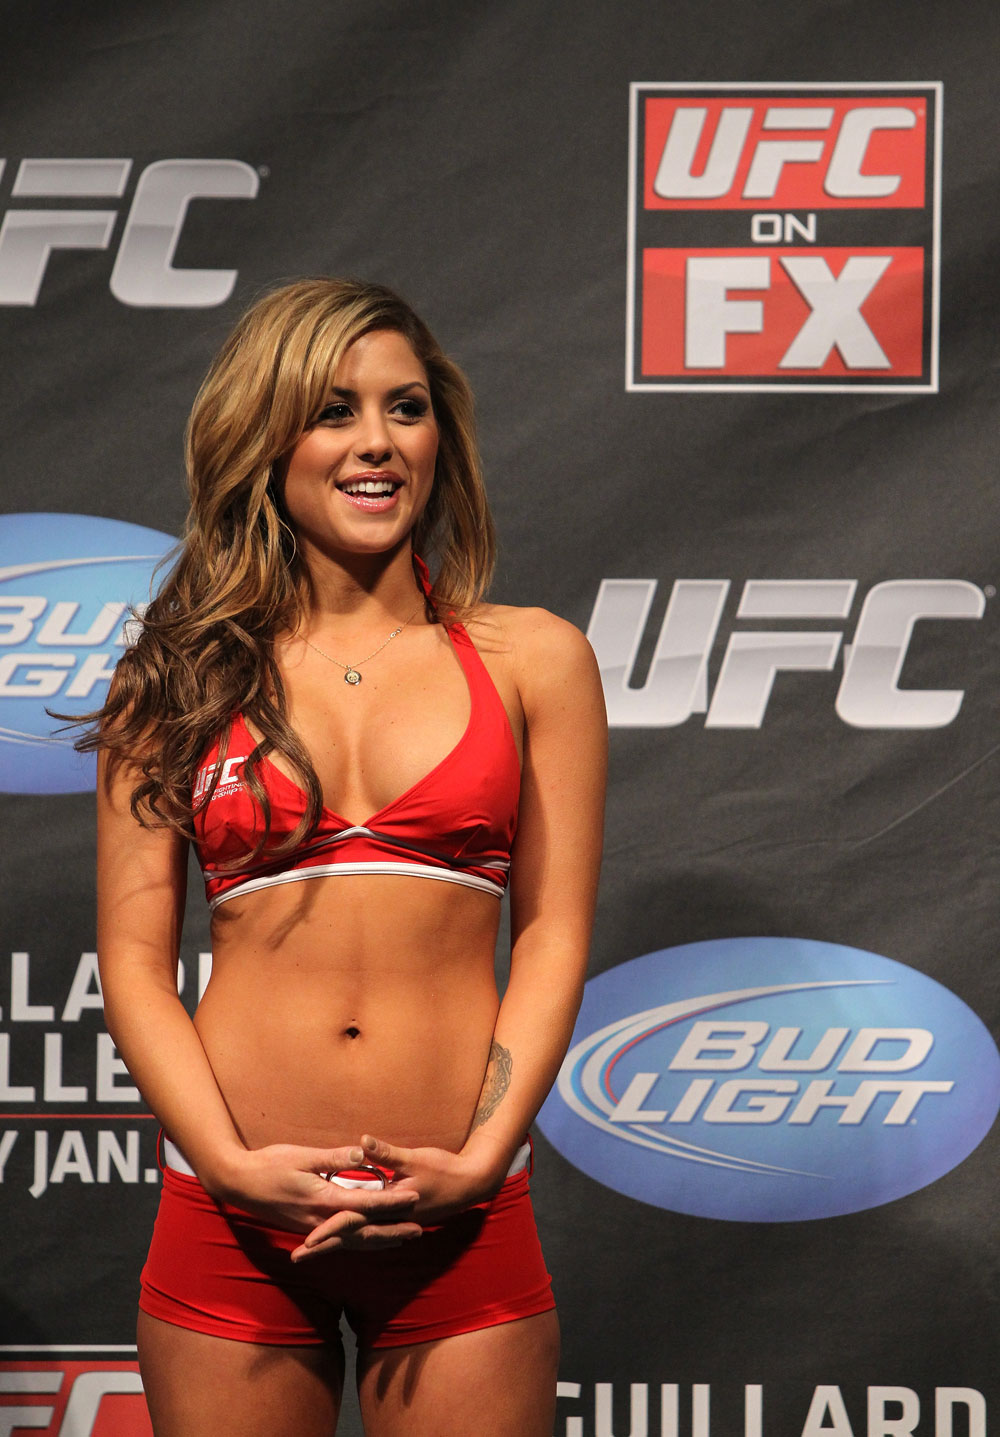 NASHVILLE, TN - JANUARY 19:  UFC Octagon Girl Brittney Palmer attends the UFC on FX official weigh in at Bridgestone Arena on January 19, 2012 in Nashville, Tennessee.  (Photo by Josh Hedges/Zuffa LLC/Zuffa LLC via Getty Images)